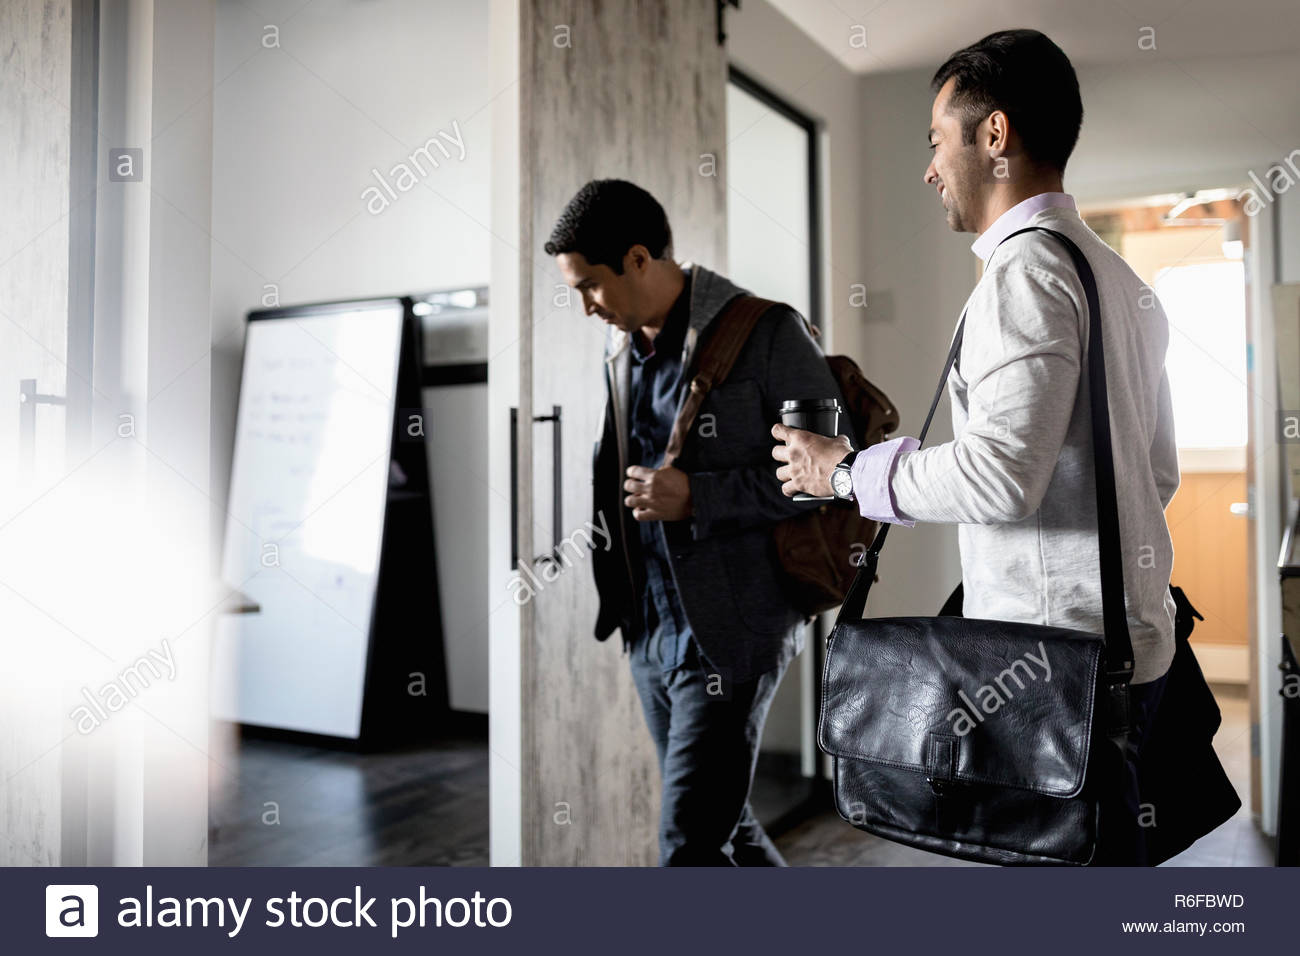 Creative businessmen arriving at office - Stock Image